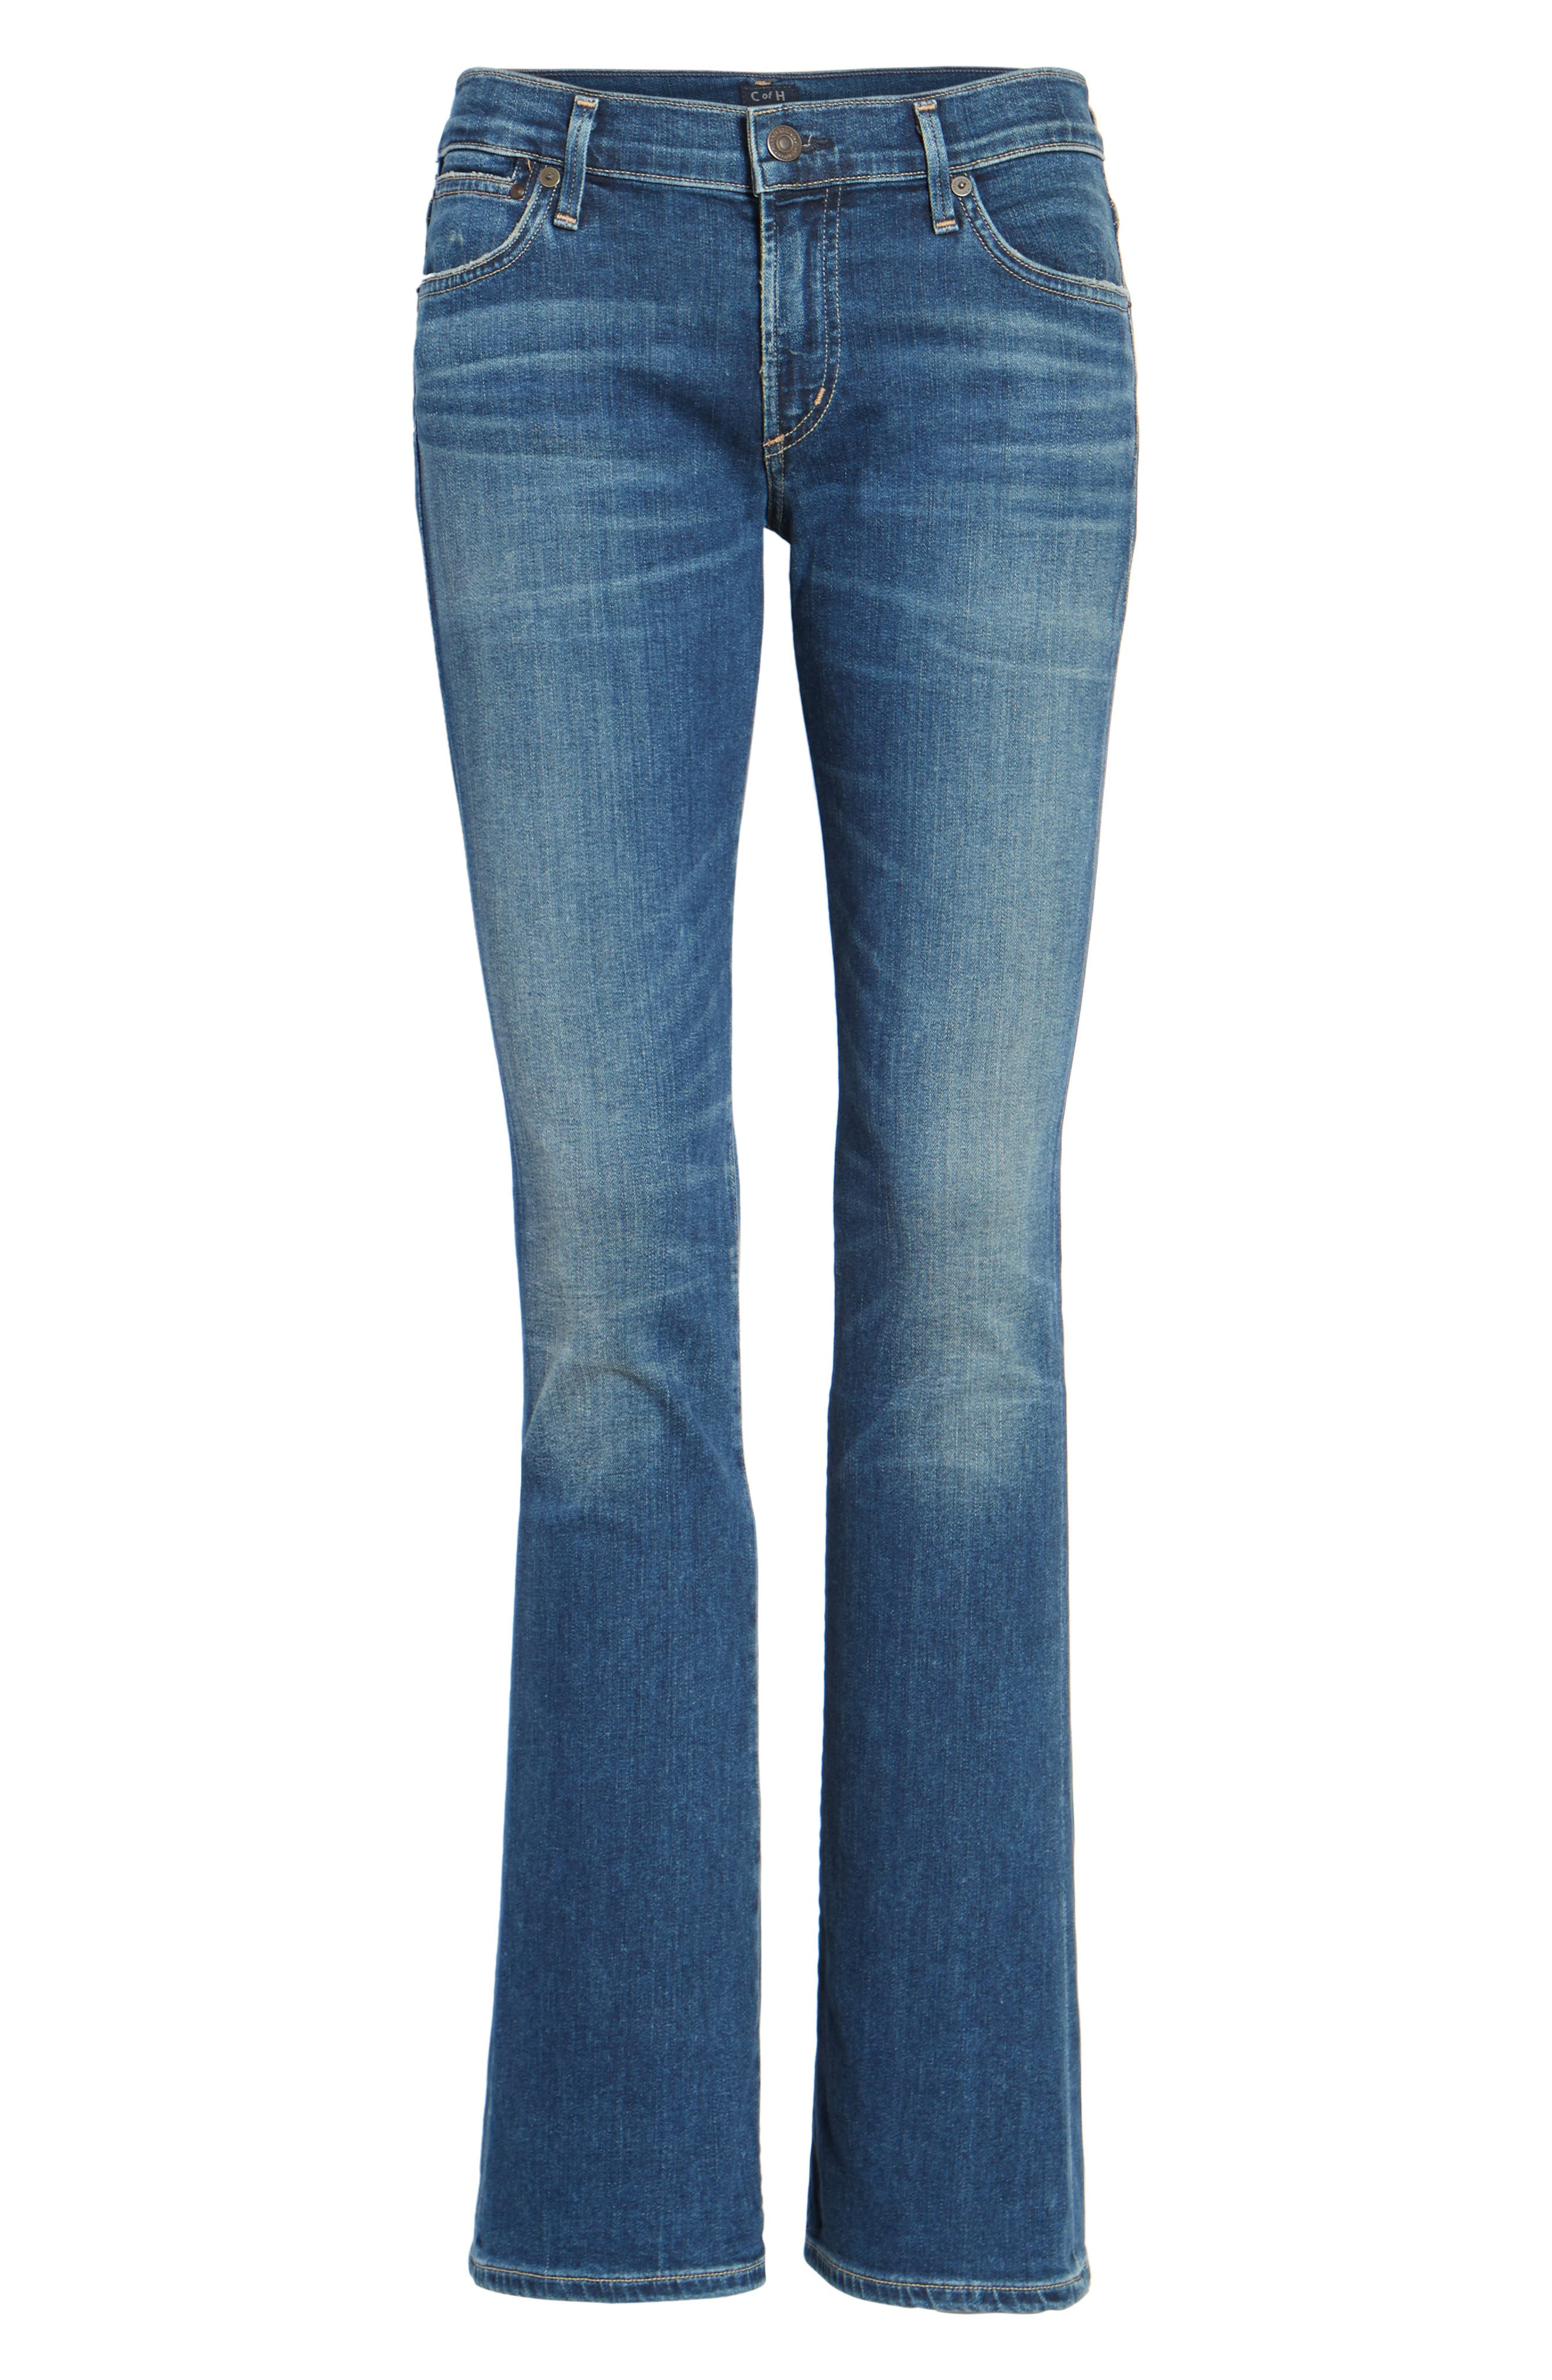 CITIZENS OF HUMANITY 'Emannuelle' Bootcut Jeans, Main, color, MODERN LOVE